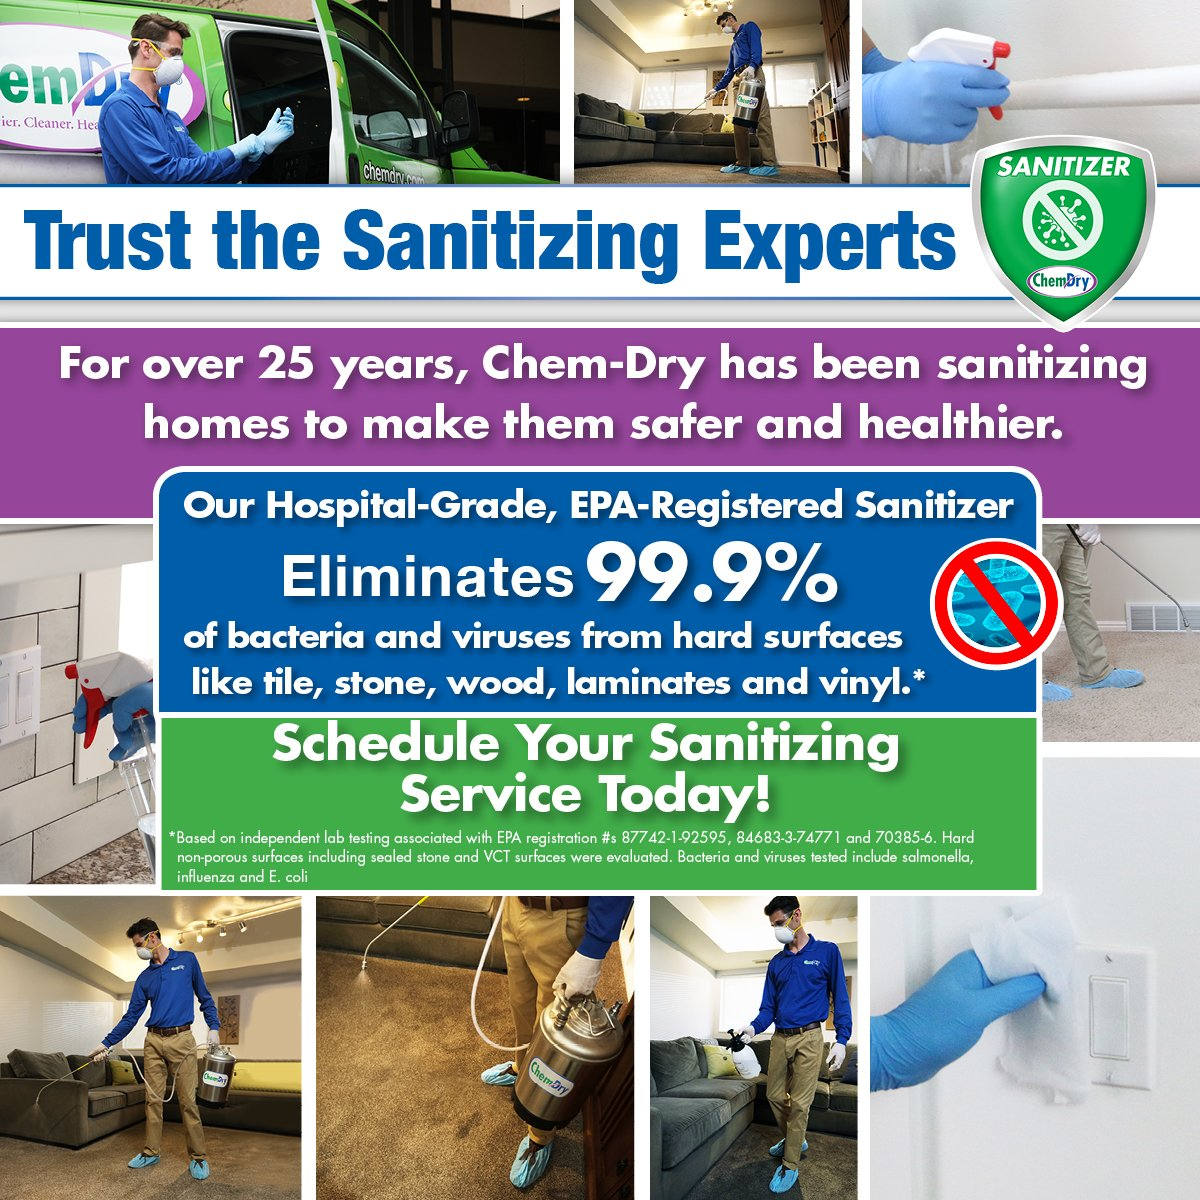 Trust the Sanitizing Experts. For over 25 years, Chem-Dry has been sanitizing homes to make them safer and healthier. Our hospital-grade, EPA-registered sanitizer eliminates 99.9% of bacteria and viruses from hard surfaces like tile, stone, wood, laminates, and vinyl.* Schedule your sanitizing service today!